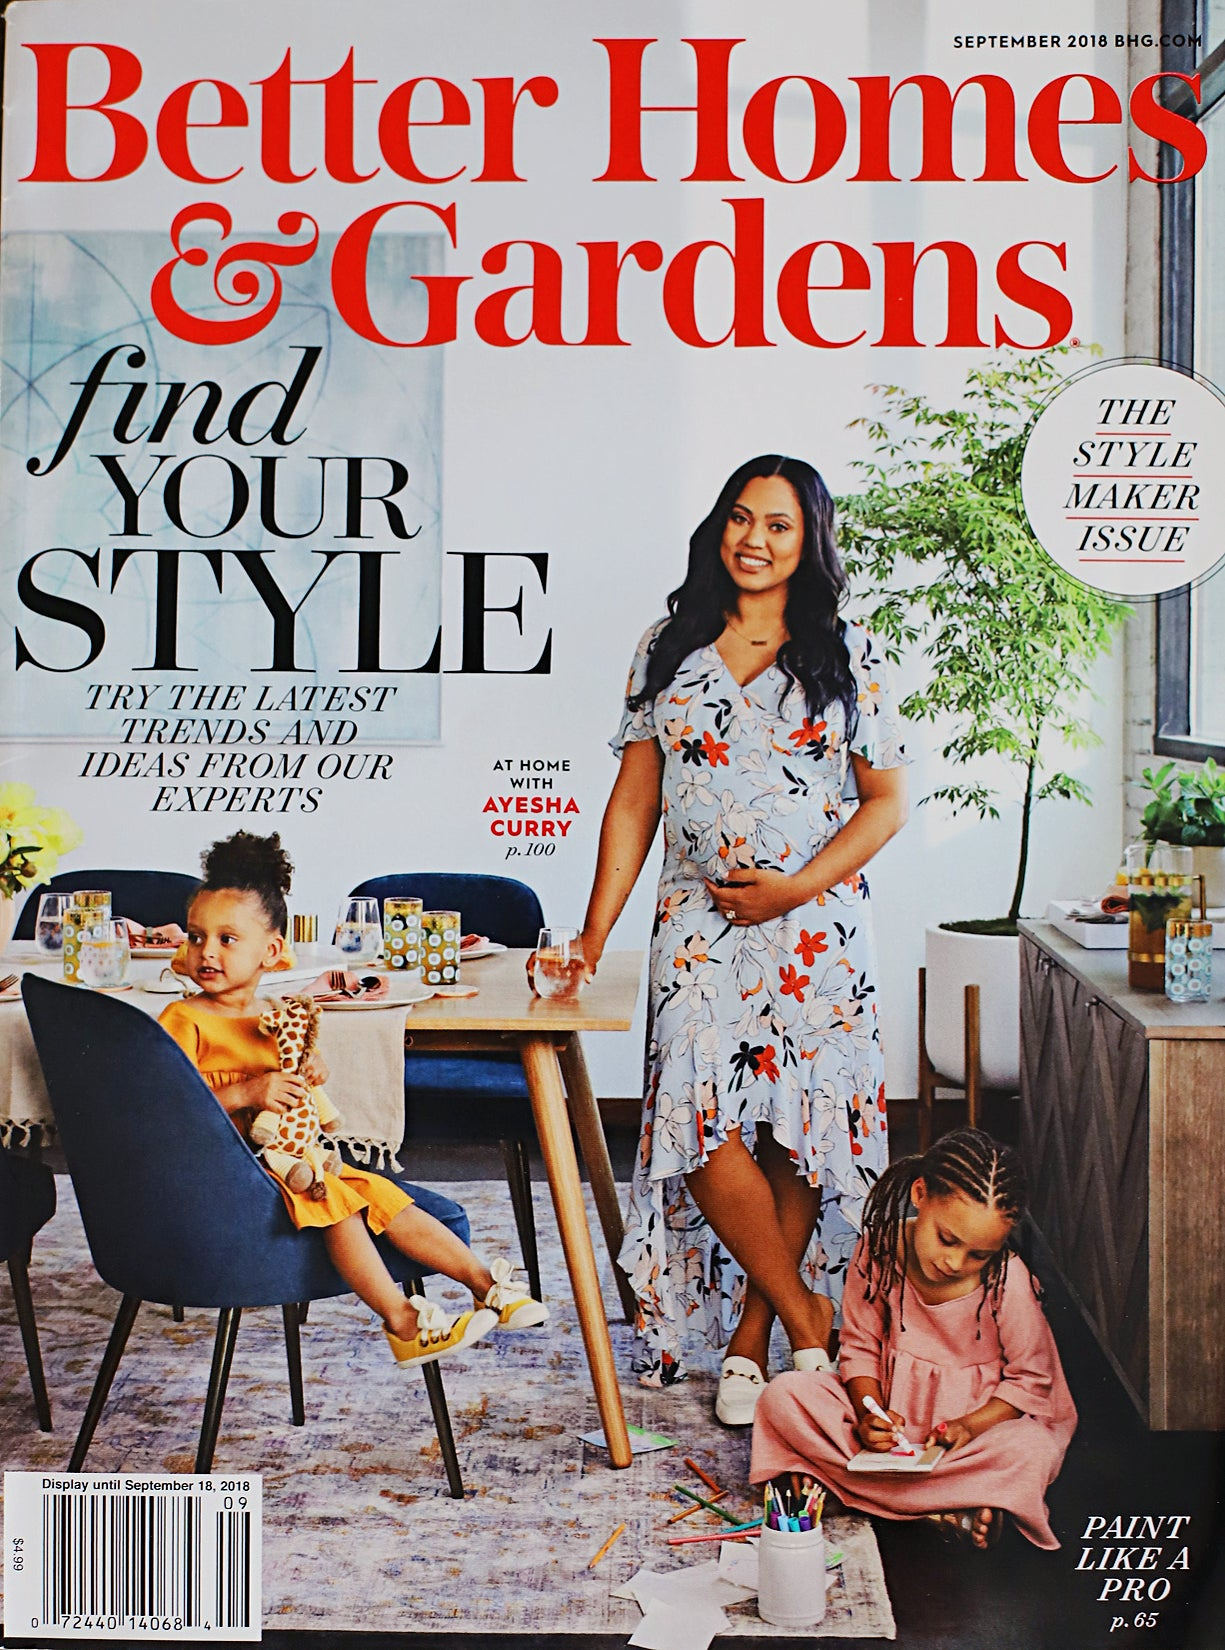 Better Homes & Gardens | Hygge & West Home Press